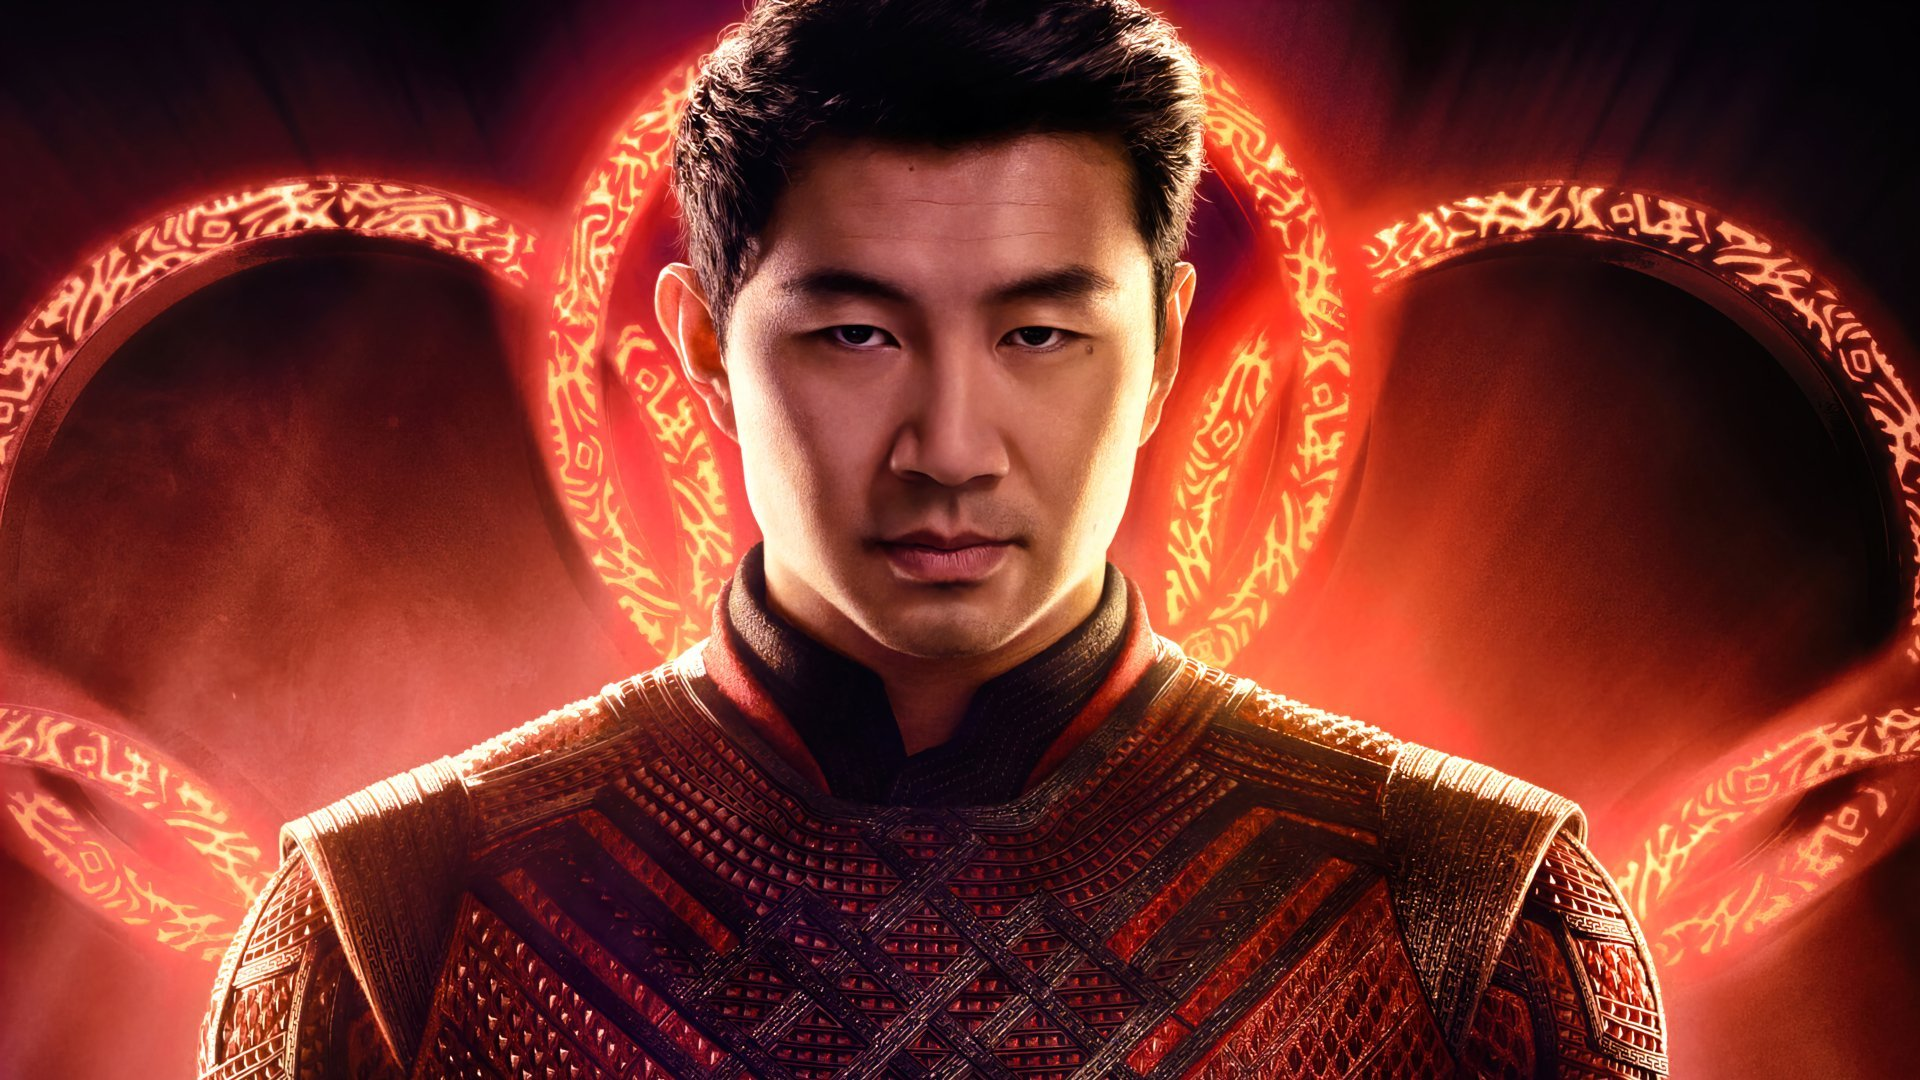 10 4K Ultra HD Shang Chi and the Legend of the Ten Rings 1920x1080